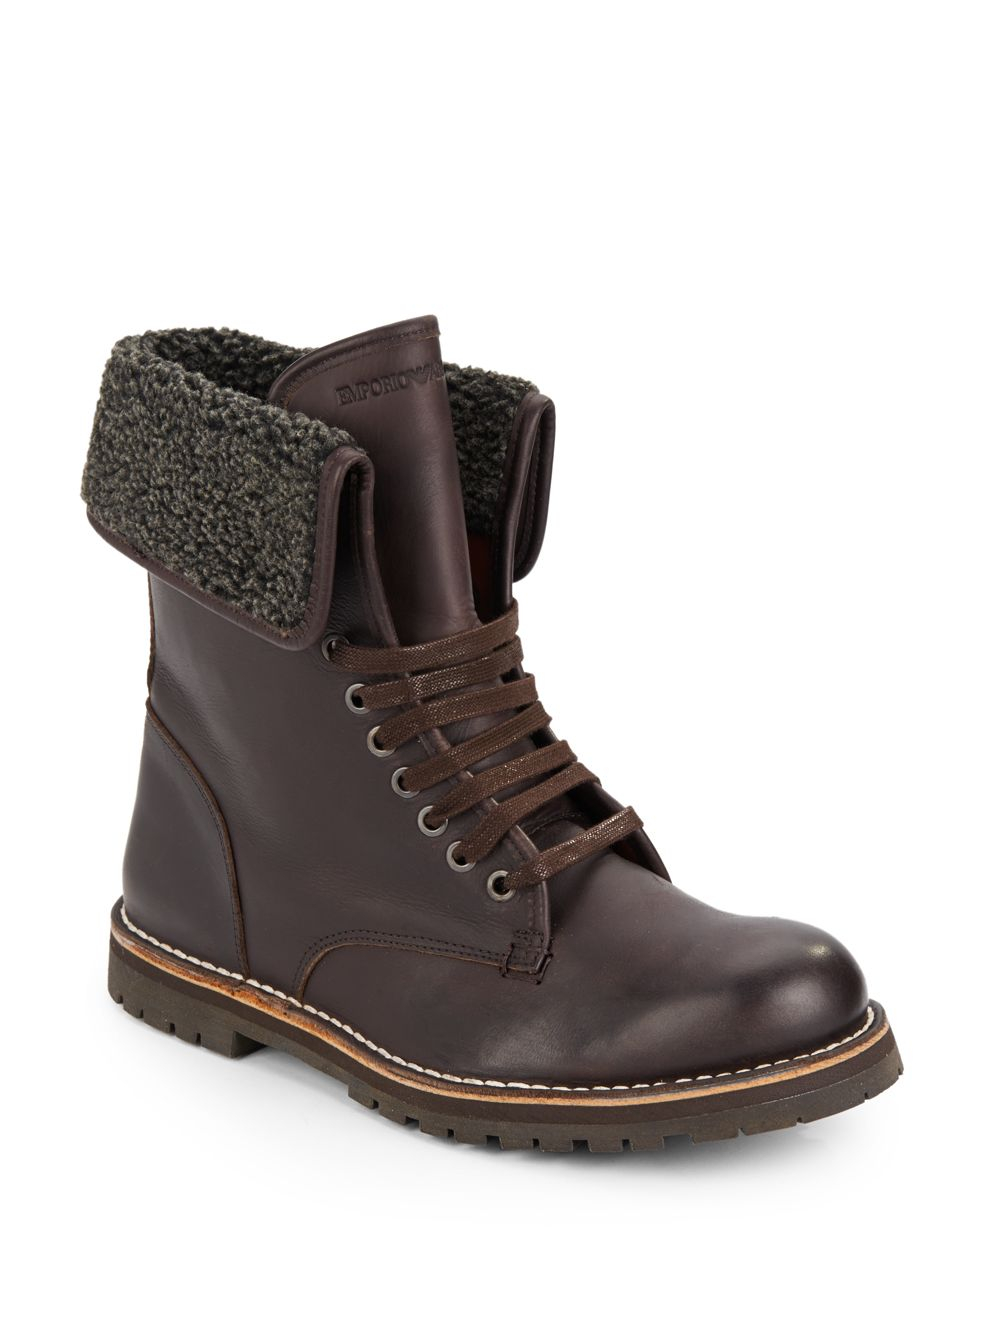 emporio armani fleece lined leather boots in brown for